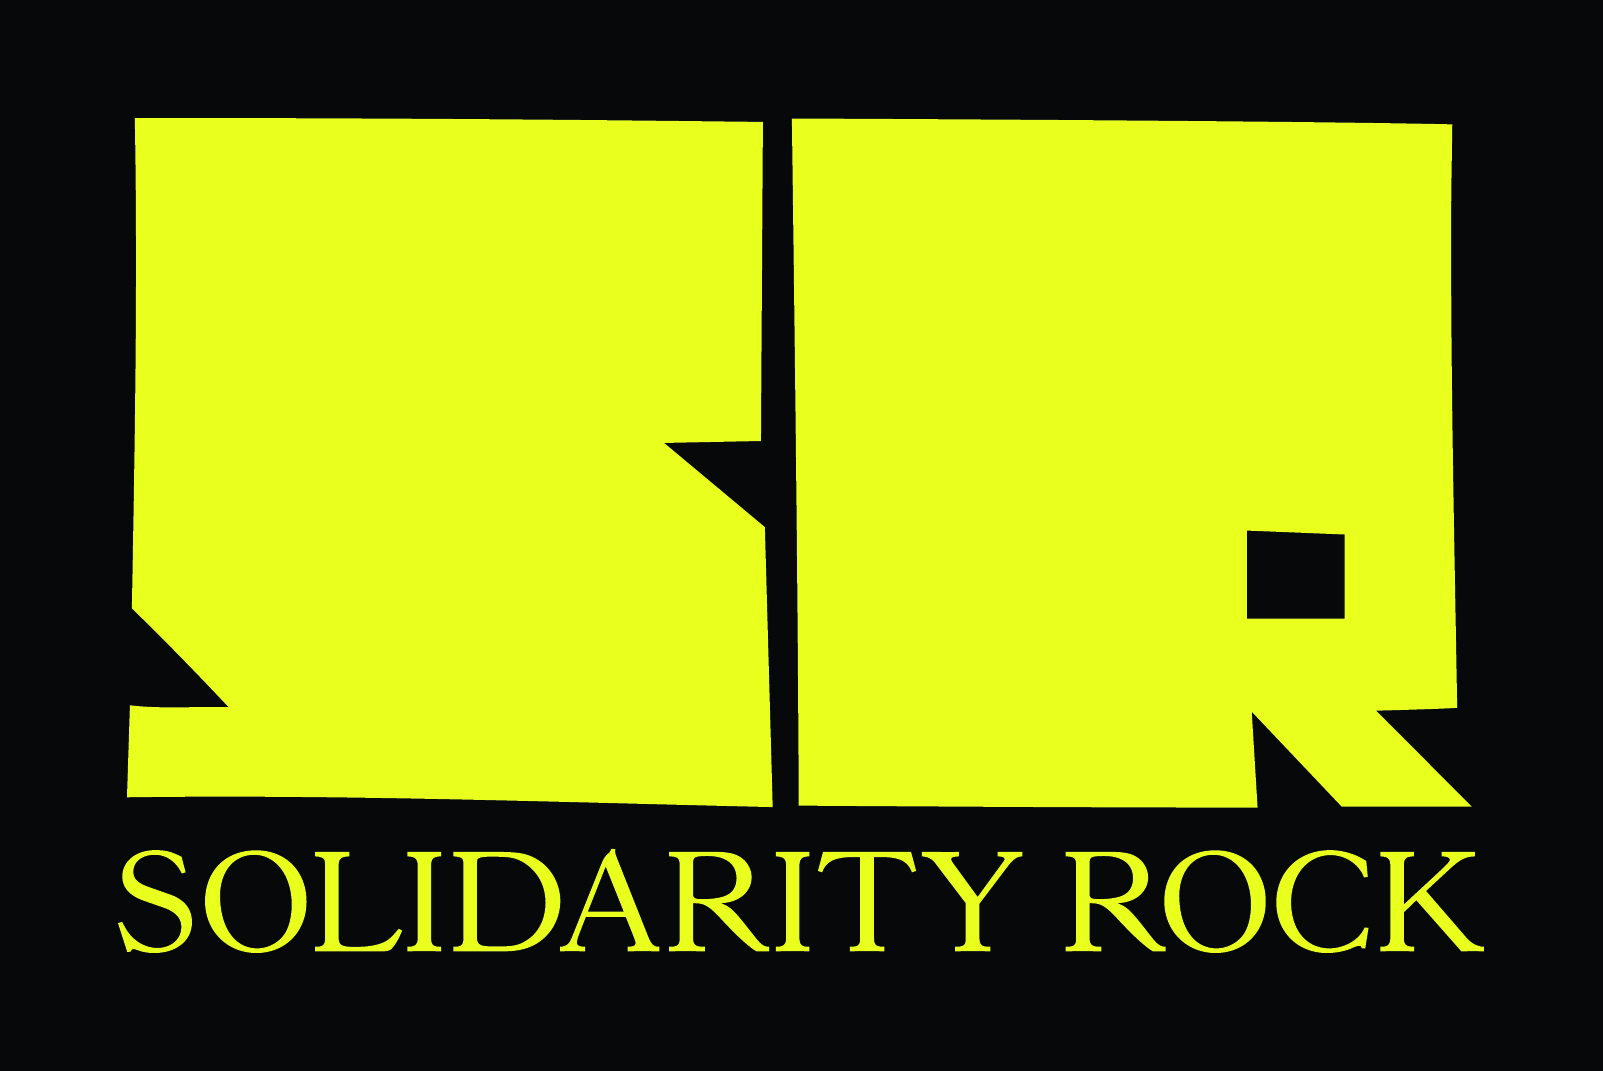 Solidarity Rock